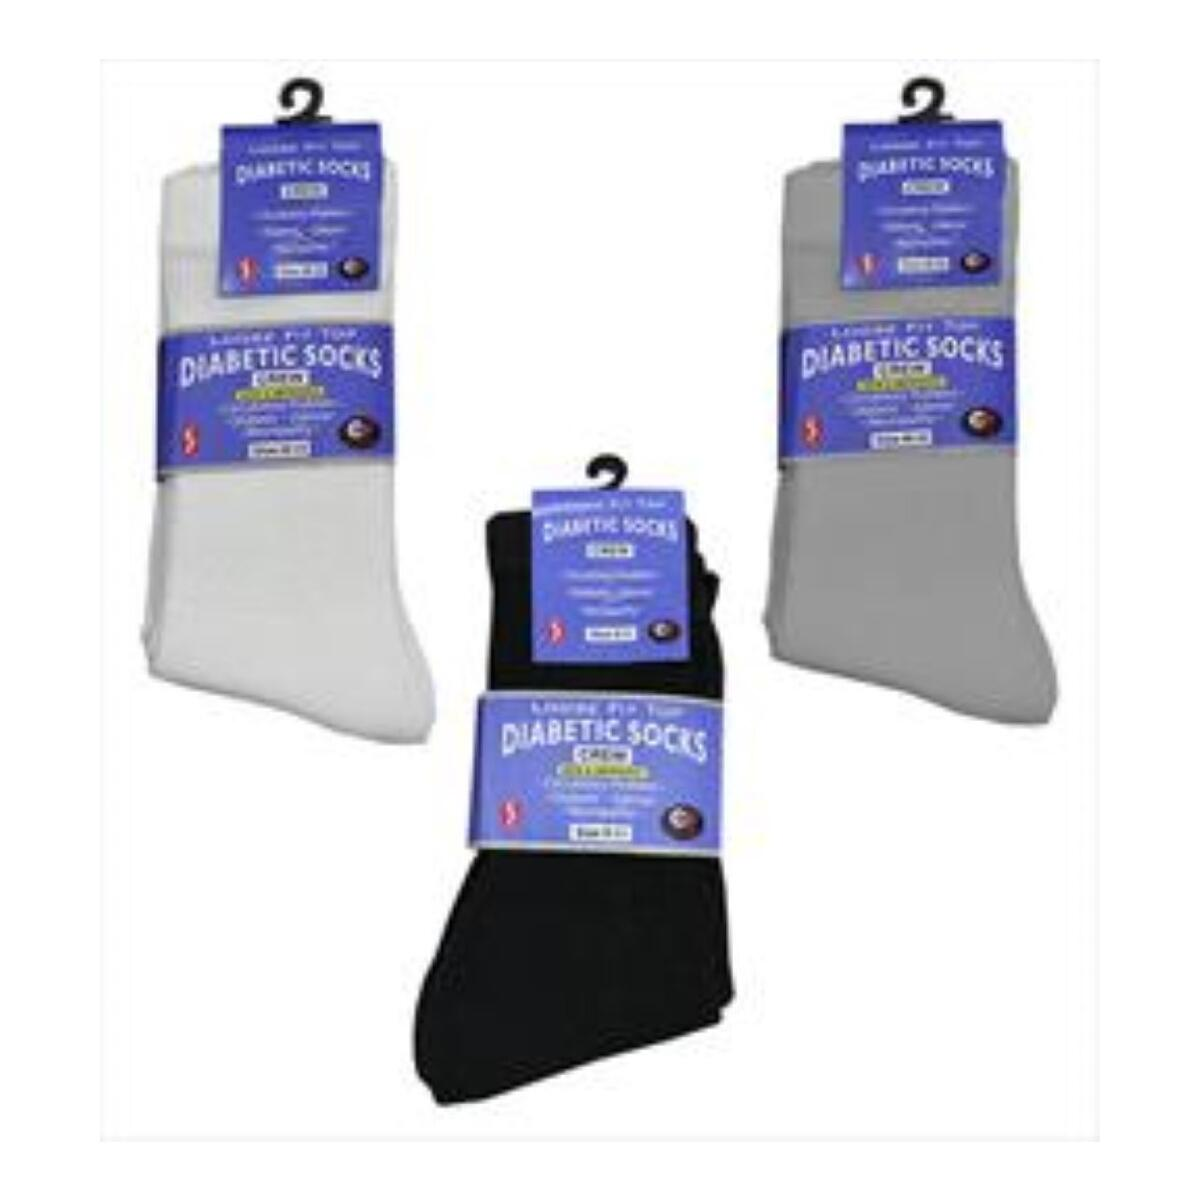 Diabetic Crew Socks L 9-11; XL 10-13 3prs